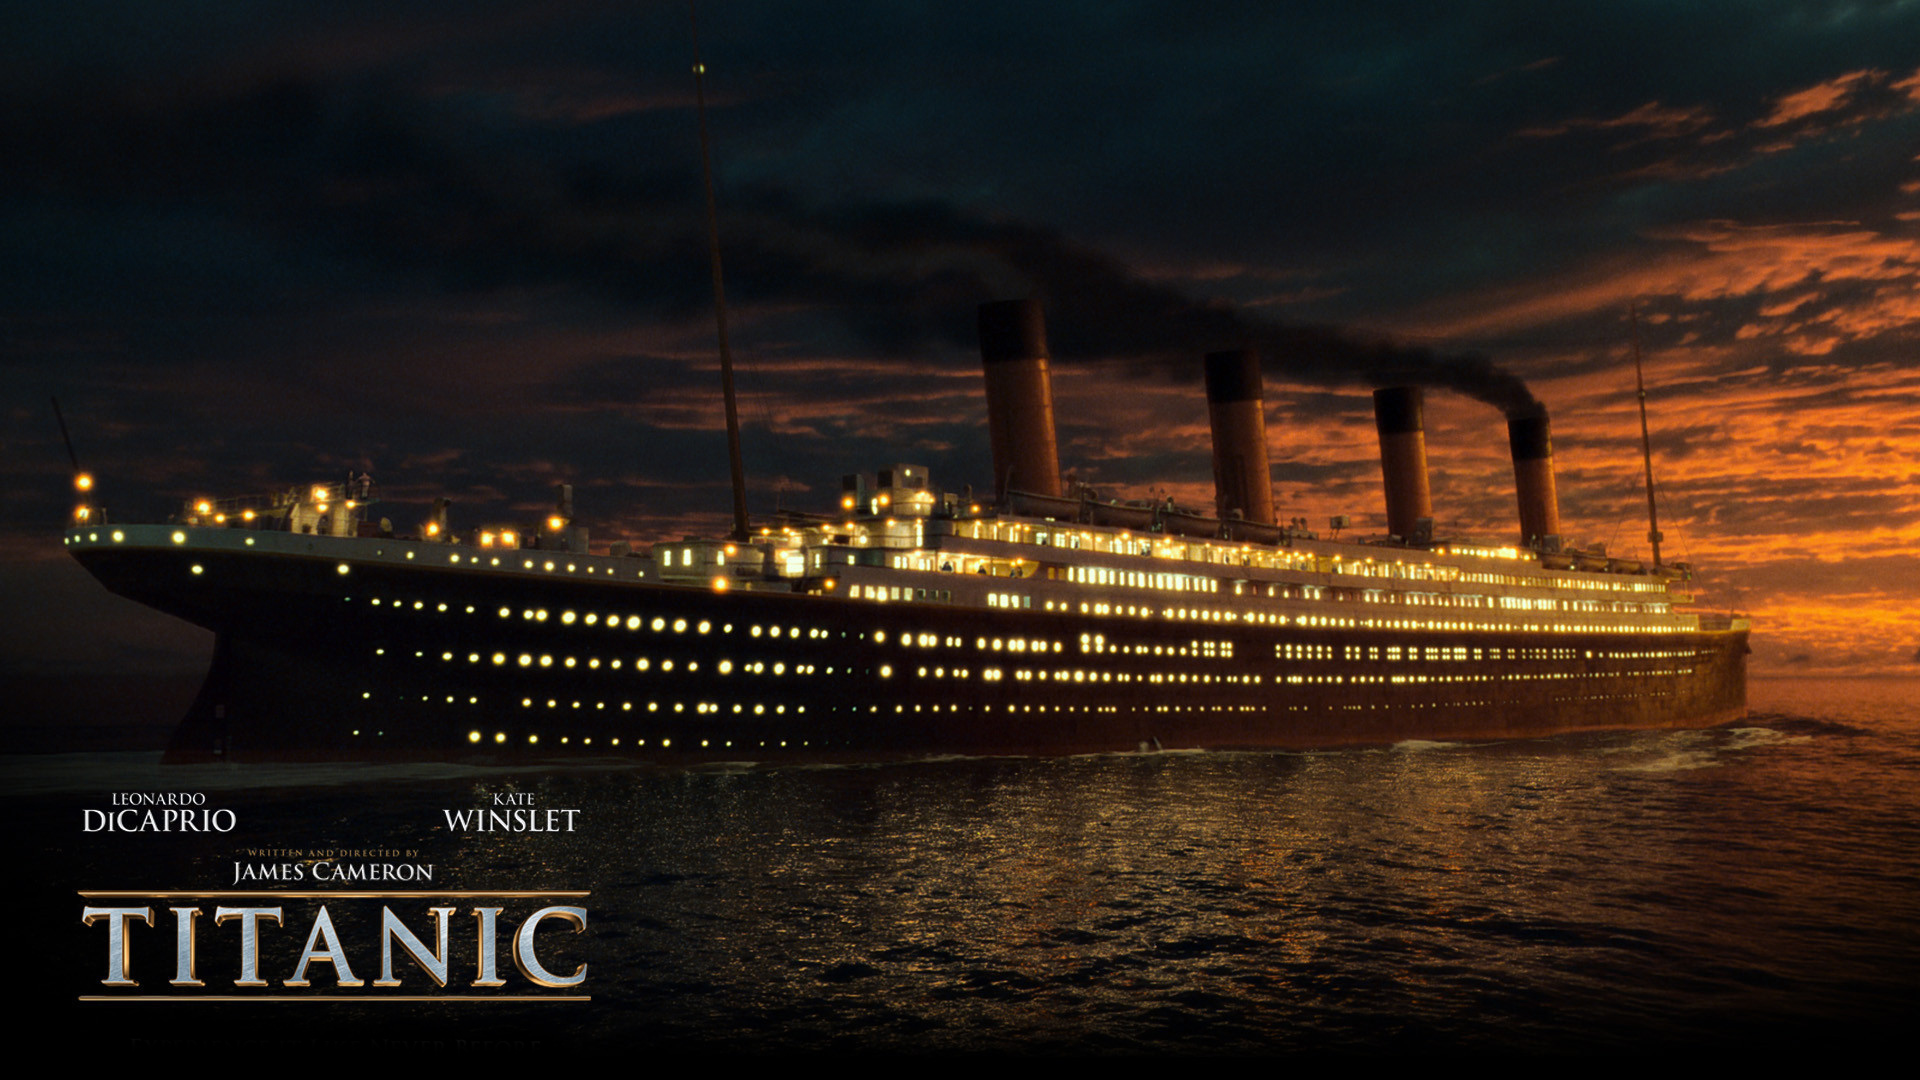 Free Download 2012 Titianic 3d Wallpapers Hd Wallpapers